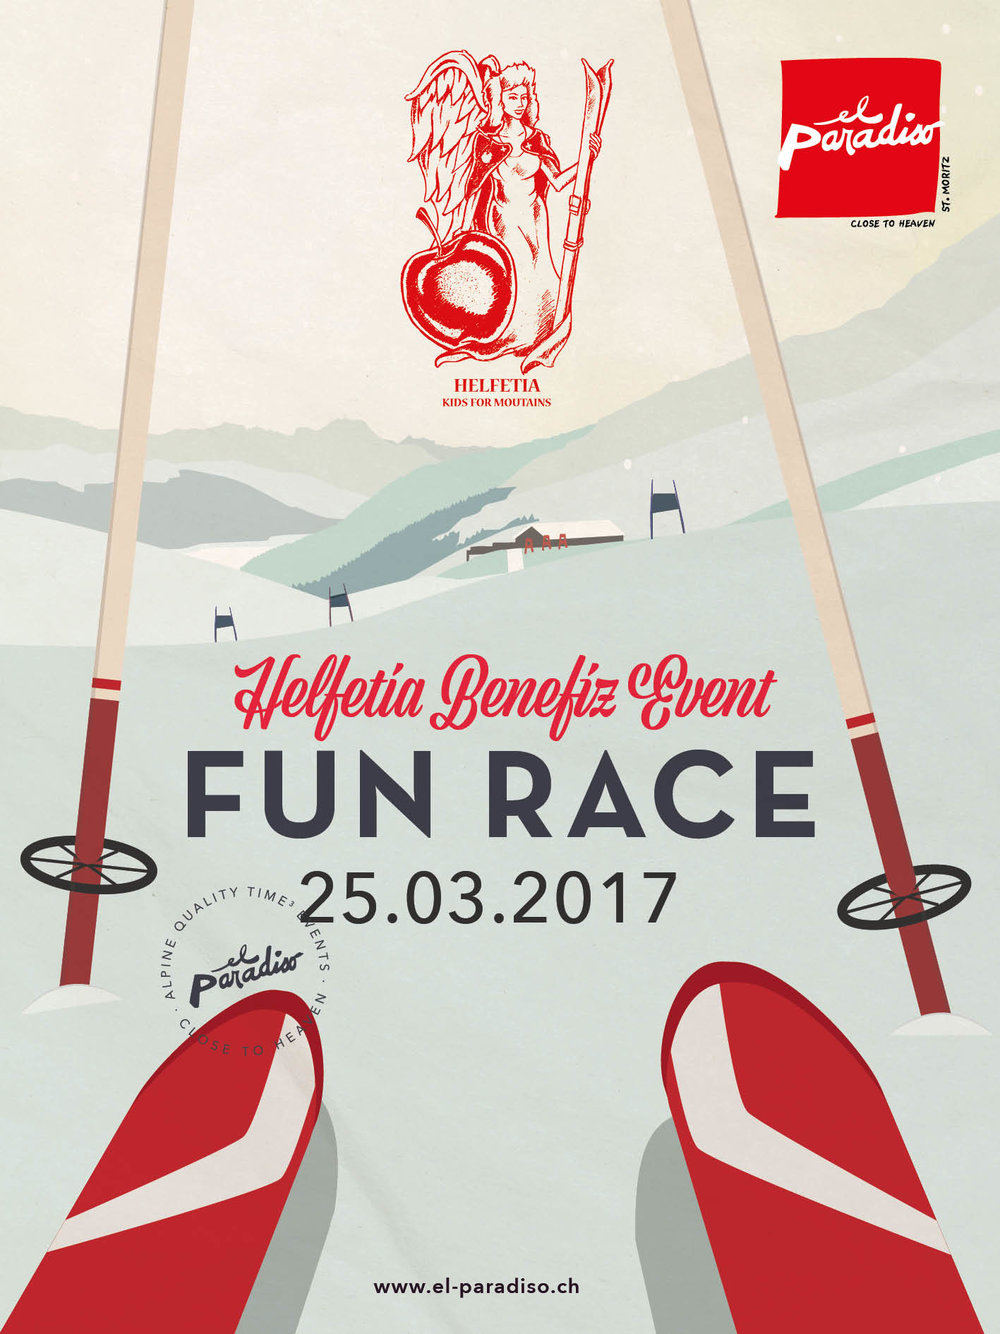 helfetia-benefiz-fun-race-2017.jpg